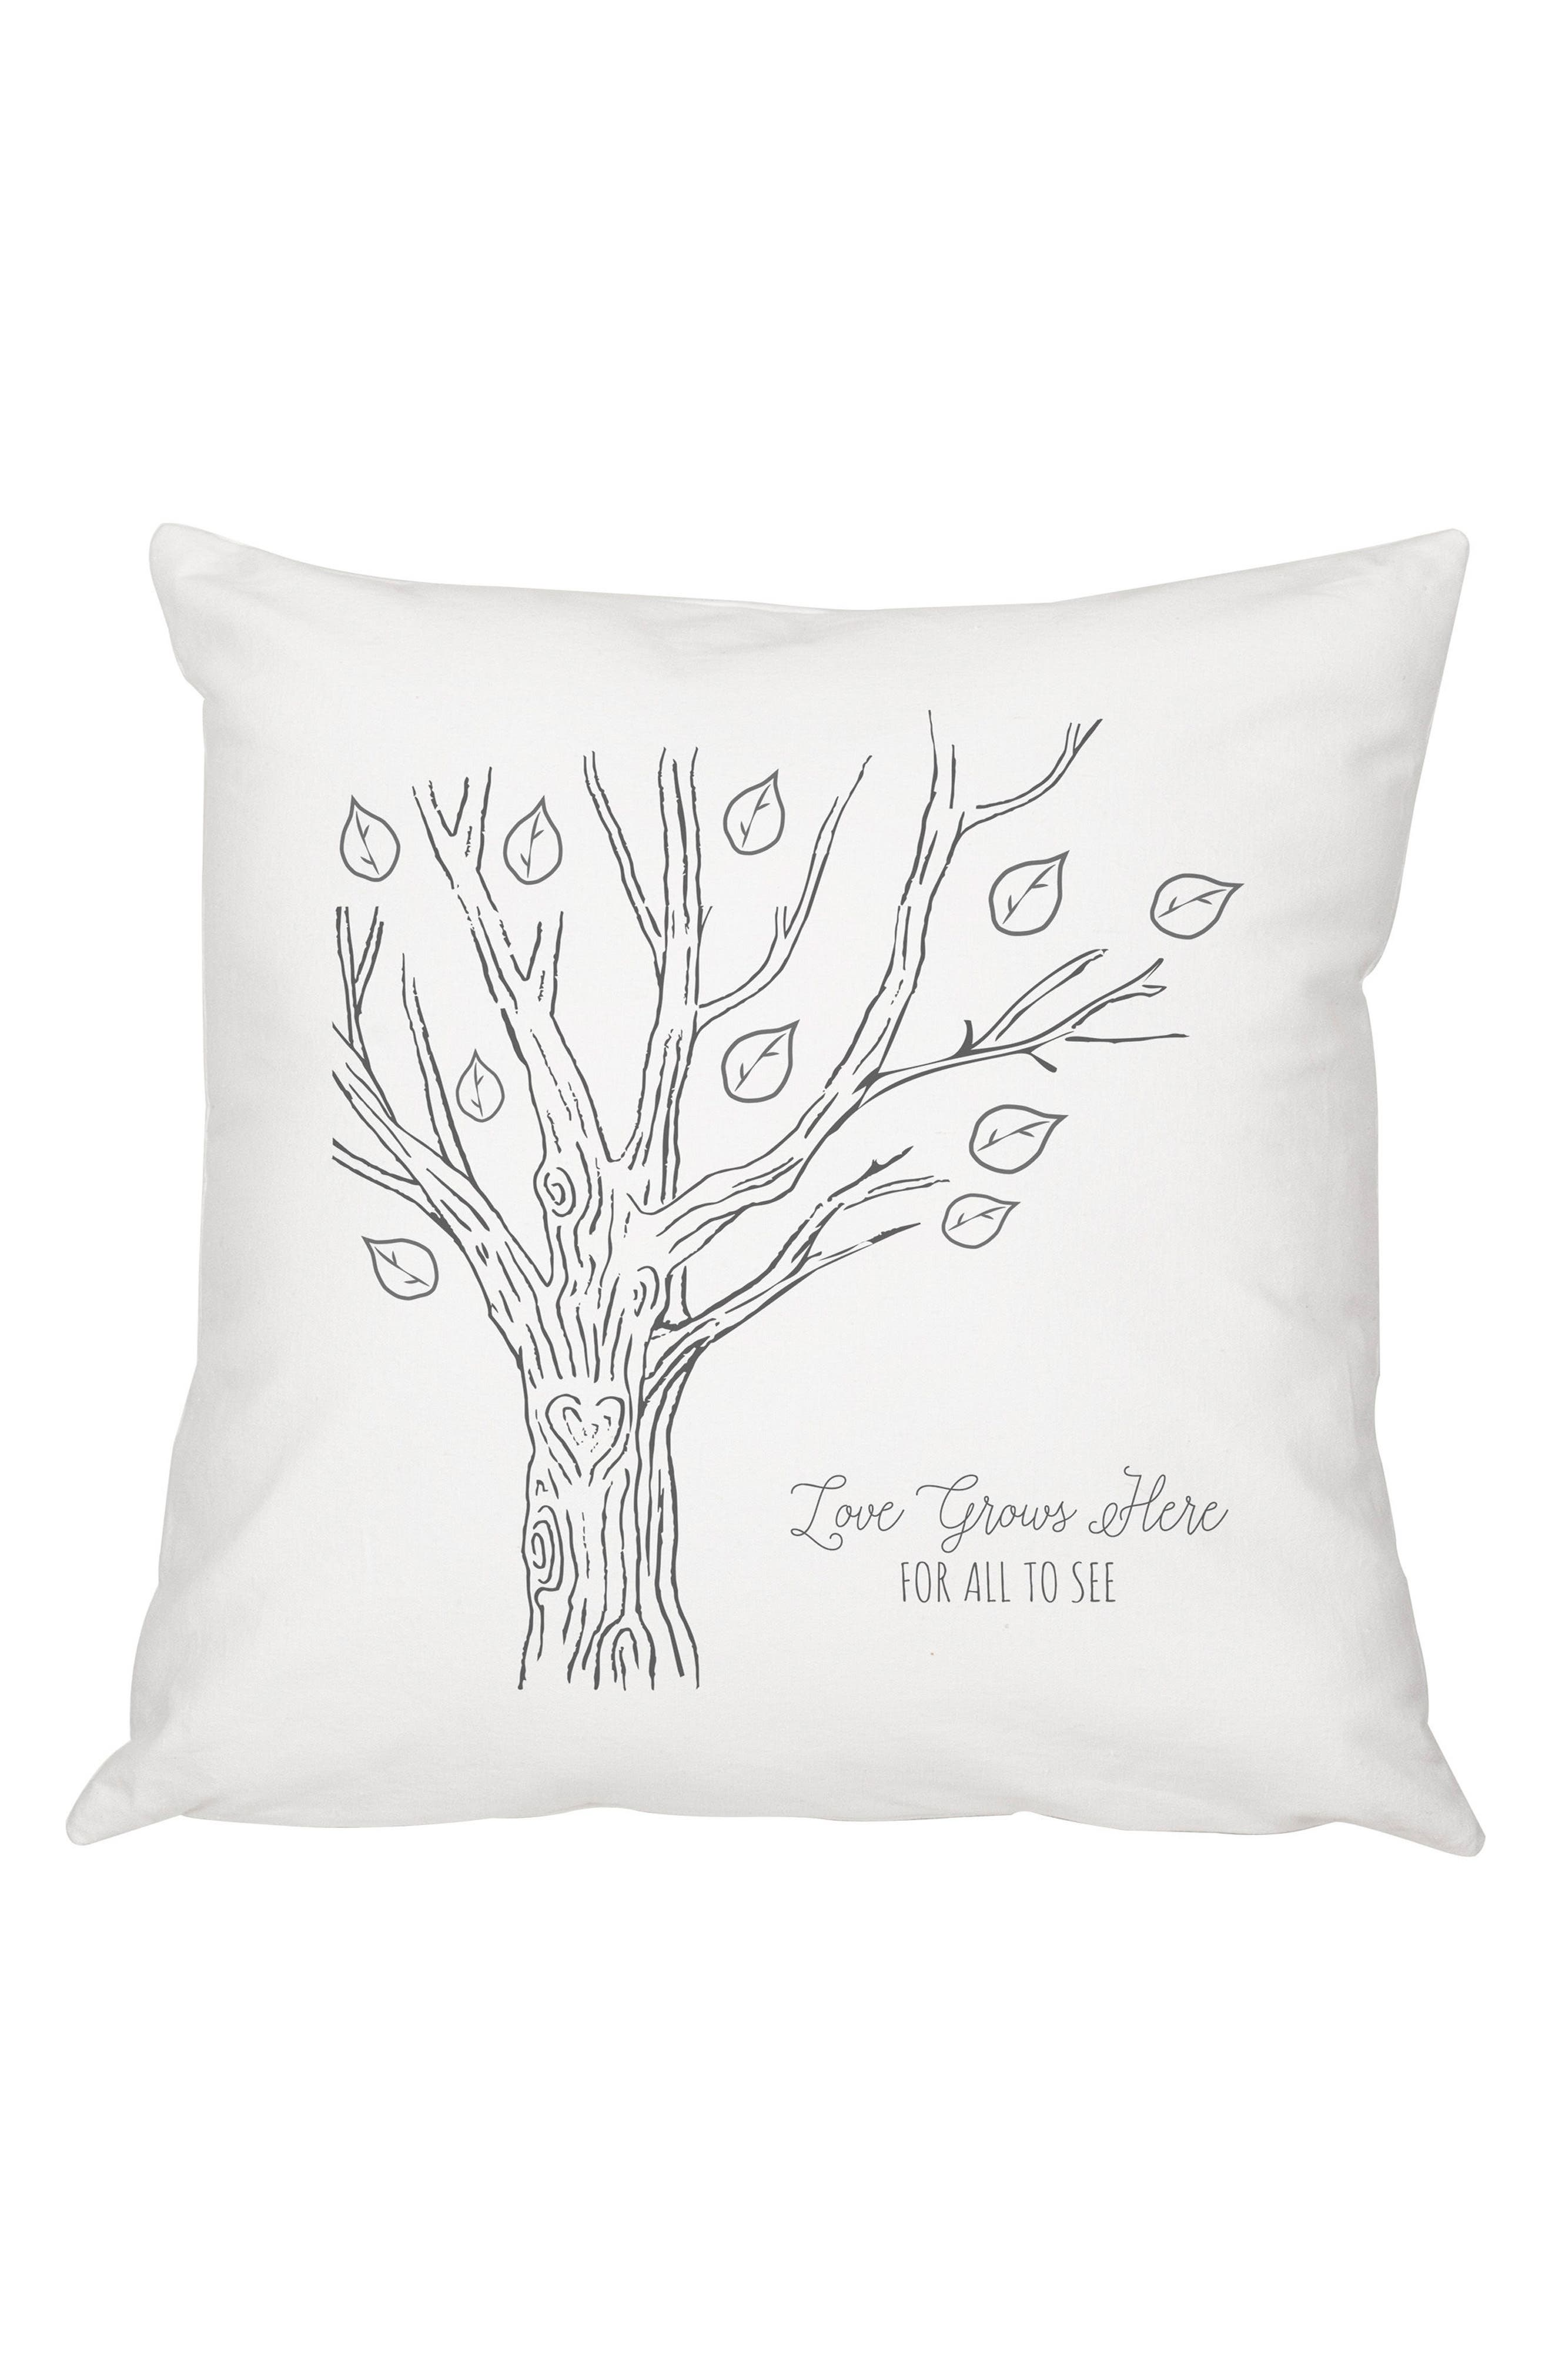 Family Tree Accent Pillow,                         Main,                         color, Black